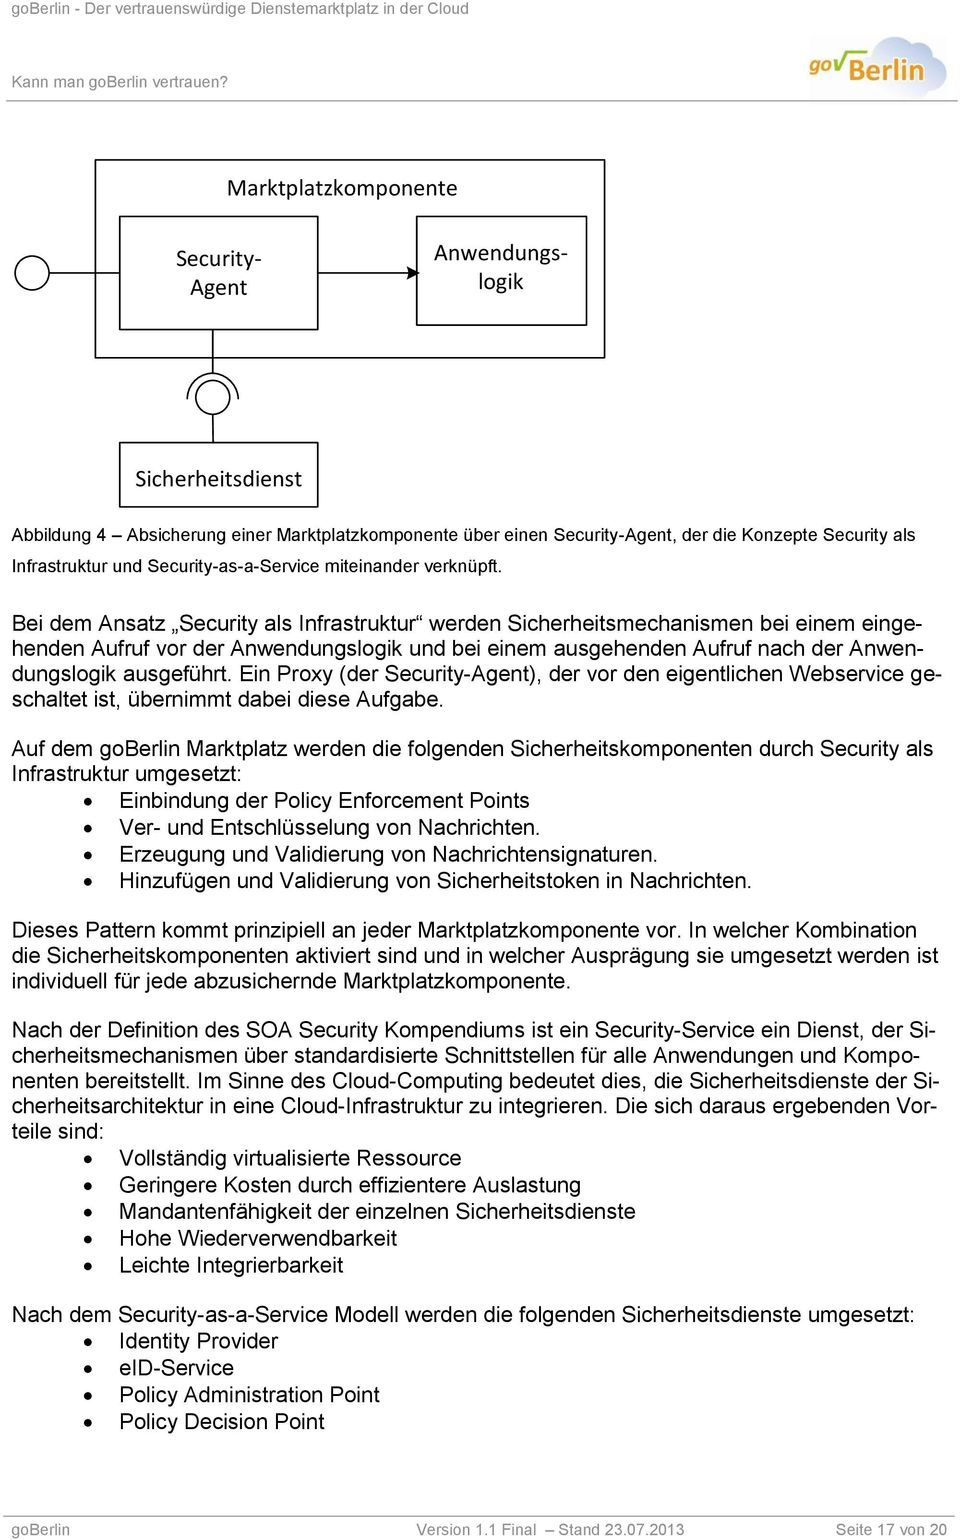 Security-as-a-Service miteinander verknüpft.